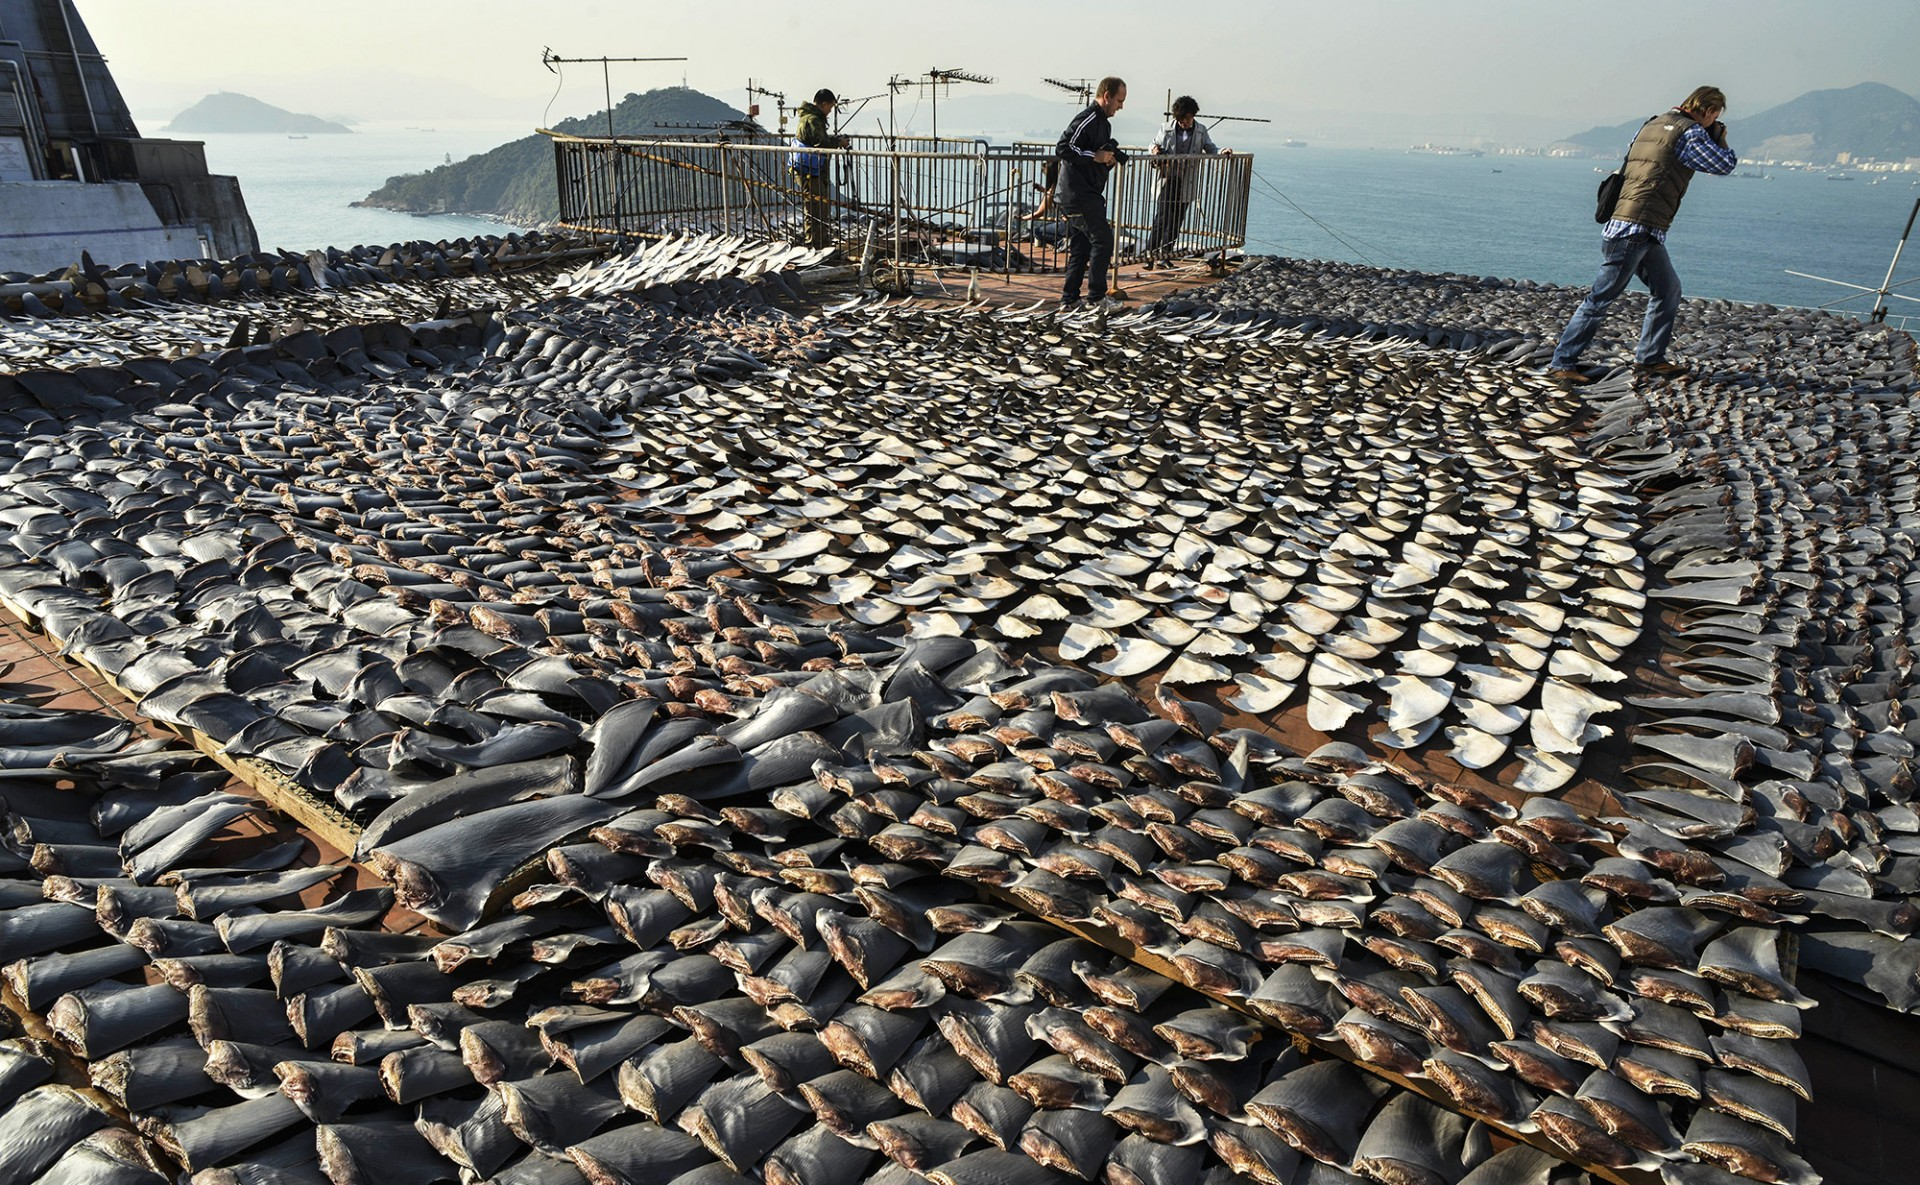 Shark fins dry in the sun covering the roof of a factory building in Hong Kong on Jan. 2, 2013. Hong Kong is one of the world's biggest markets for shark fins, but imports there have dropped by 29 percent since 2011, according to a new study. Photo: Antony Dickson/AFP/Getty Images